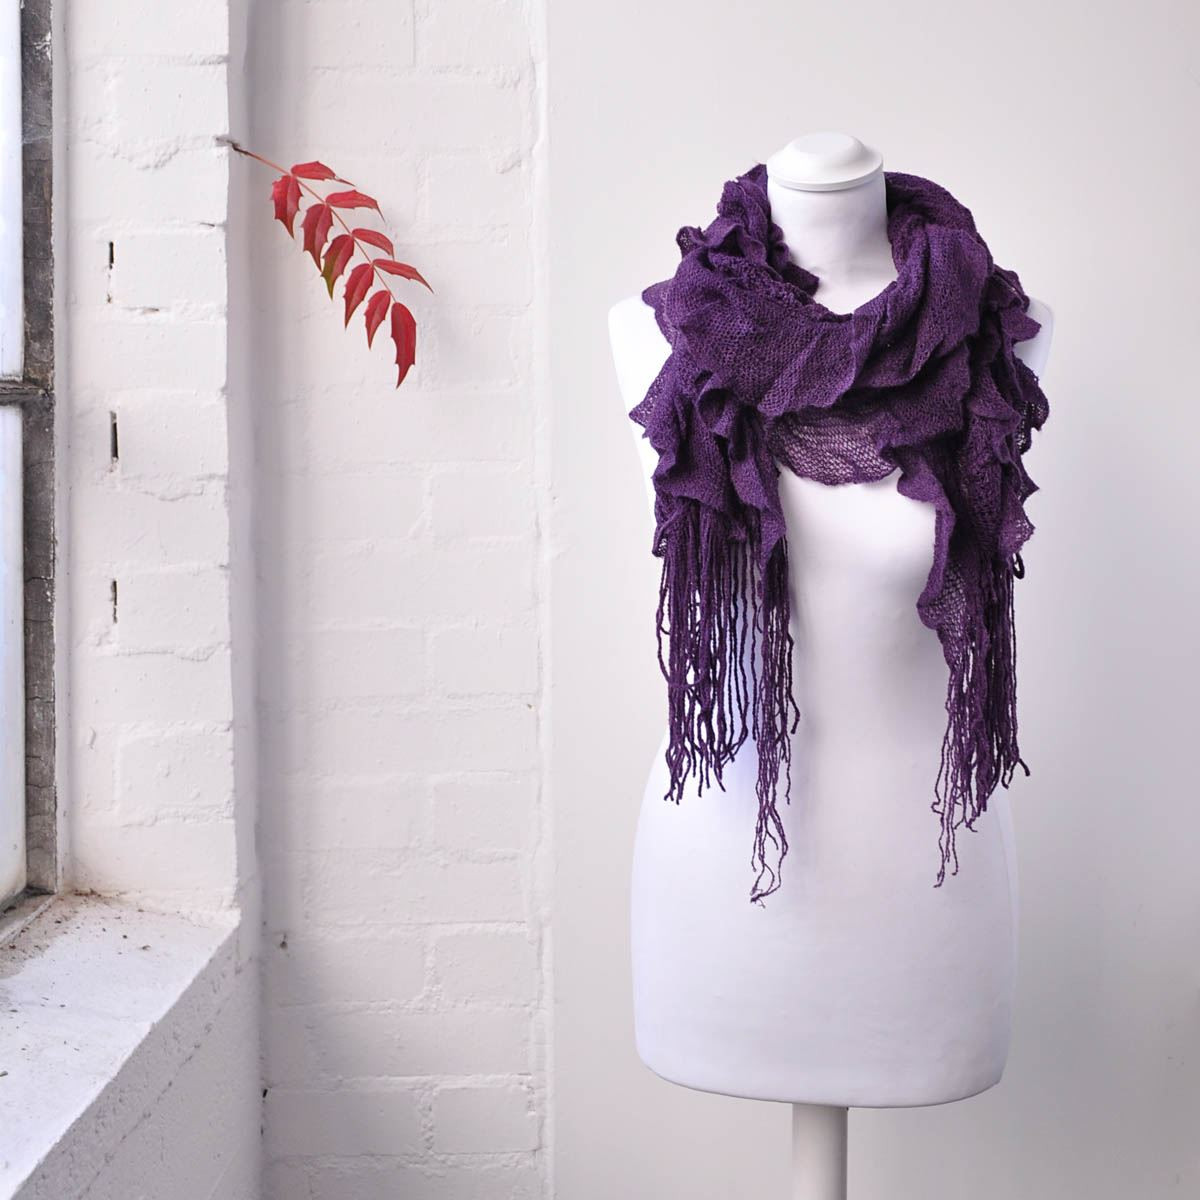 Awesome Women Ruffle Knitted Scarf Elasticated Light Fabric Winter Knit Ruffle Scarf Of Marvelous 50 Pics Knit Ruffle Scarf